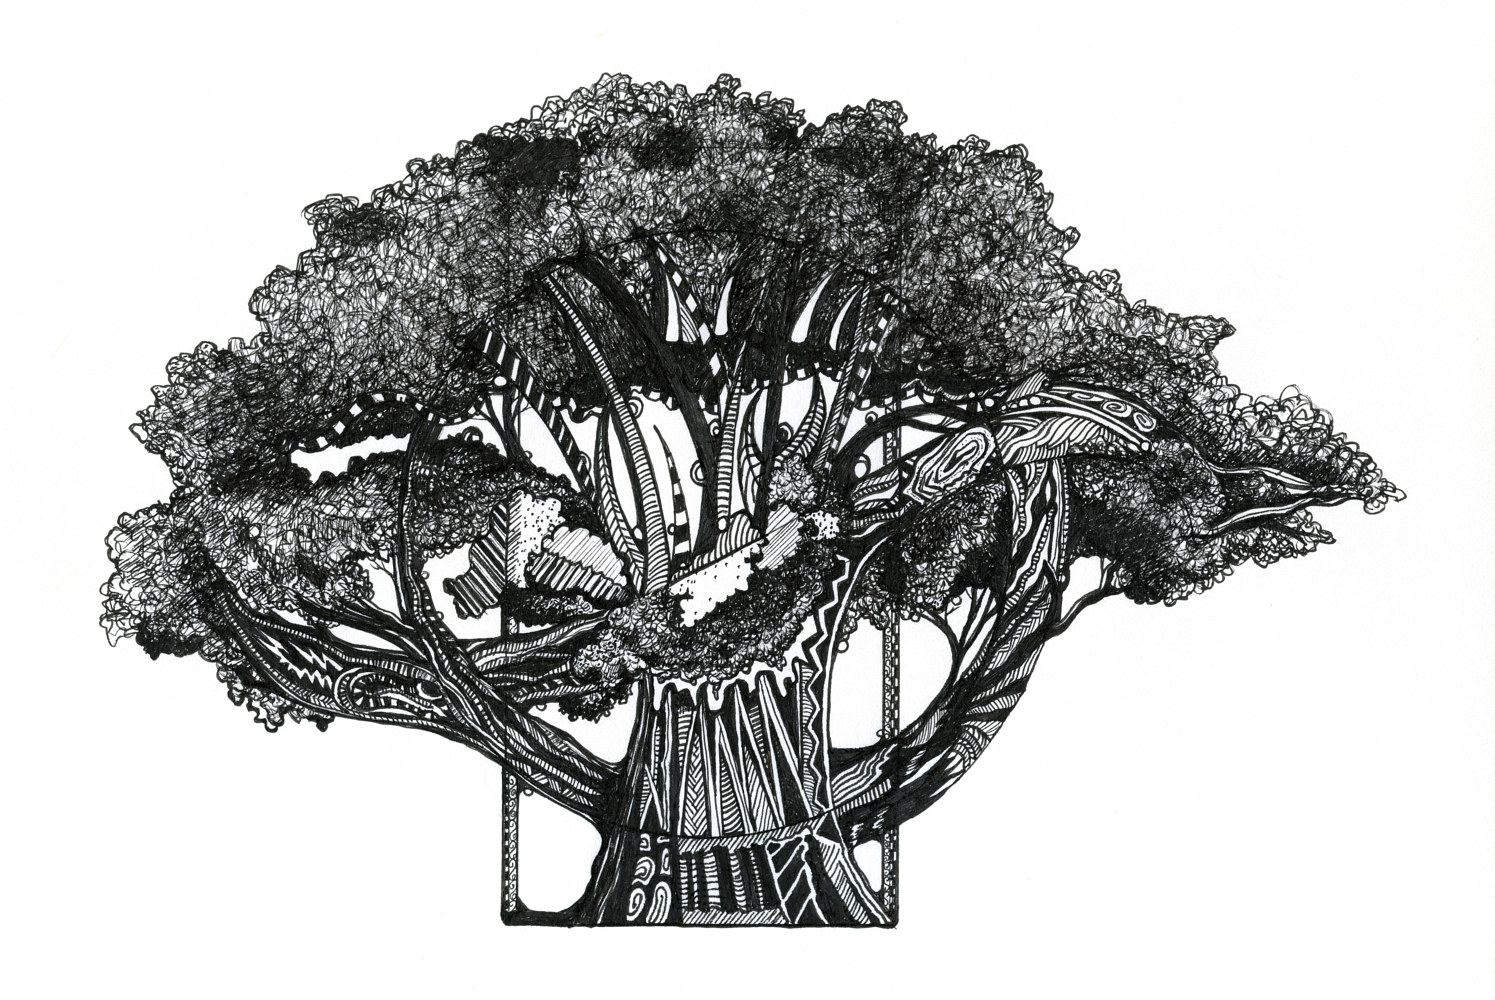 Drawing Tree of Summer by Danielle Scott